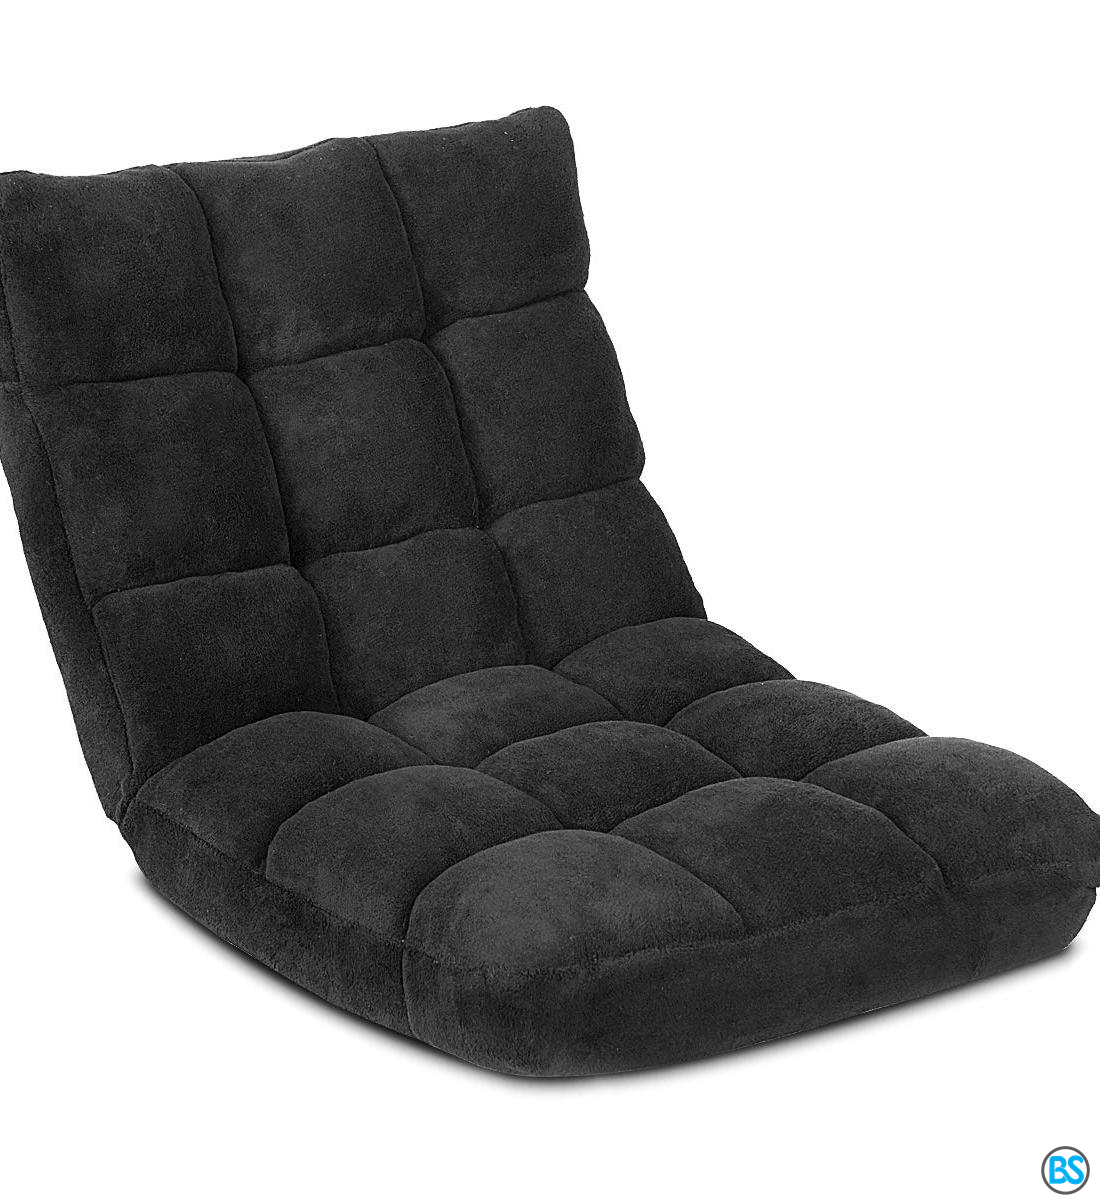 Chairs Giantex Floor Folding Gaming Sofa Chair Lounger Folding Adjustable 14 Position Sleeper Bed Couch Recliner Black In 2020 Gaming Sofa Sofa Chair Couch Bed